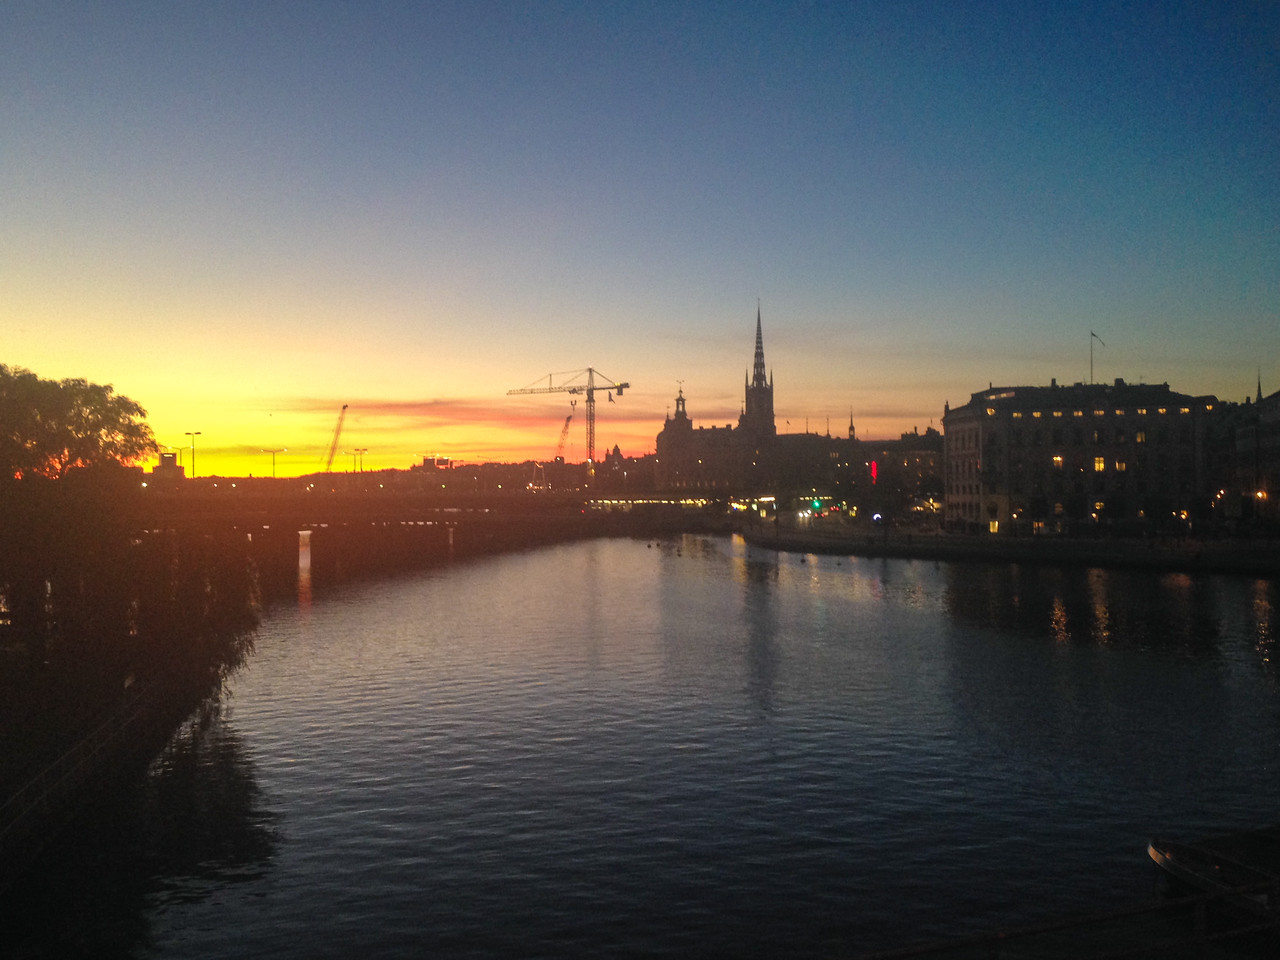 Sunset last night in stockholm